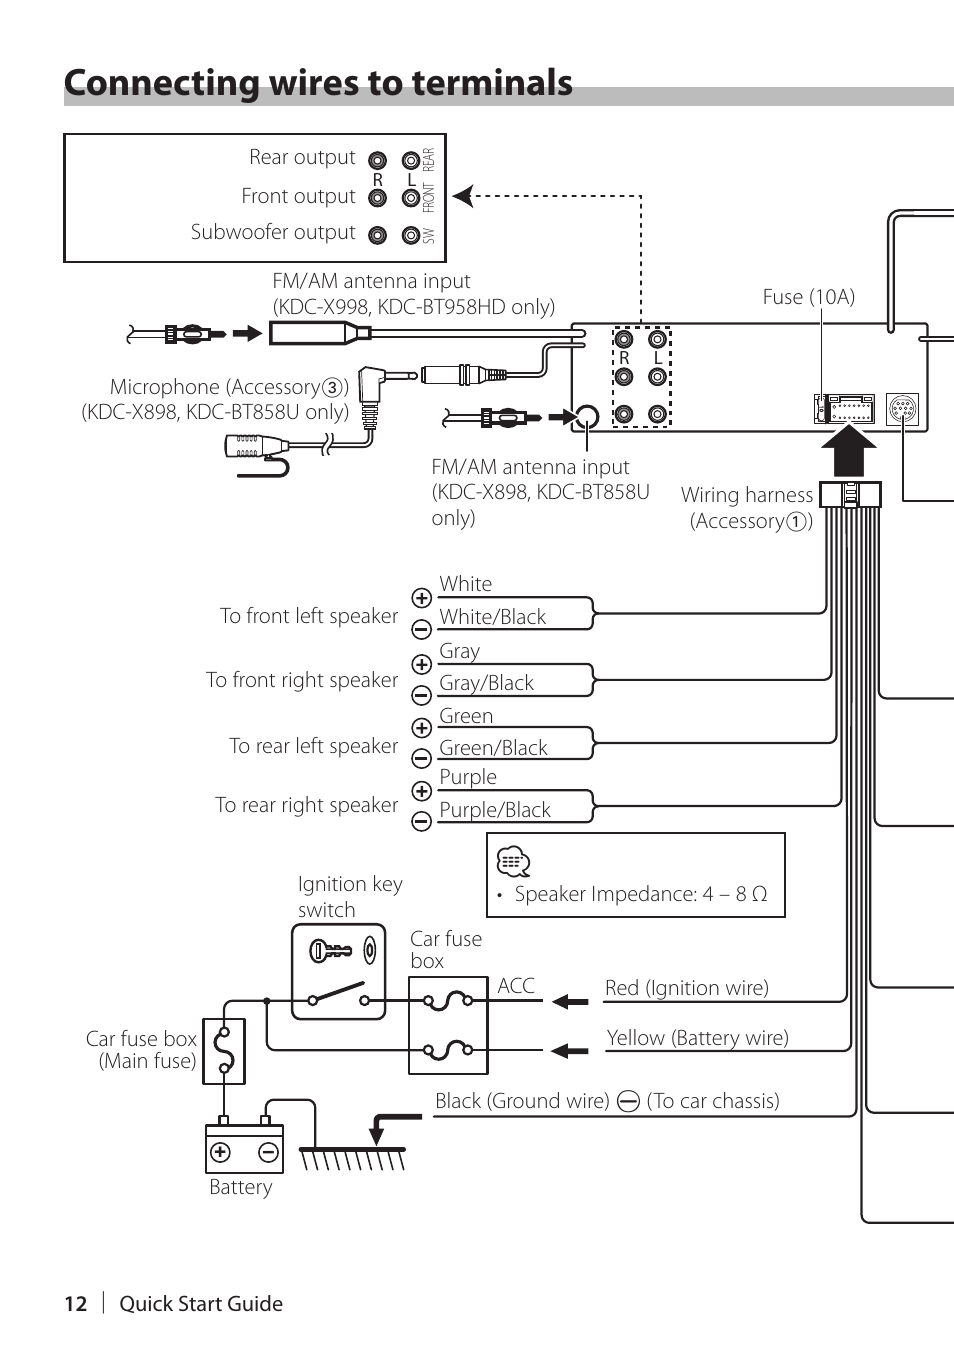 kenwood car radio wiring diagram bt 50 connecting wires to terminals | kdc-x898 user manual page 12 / 48